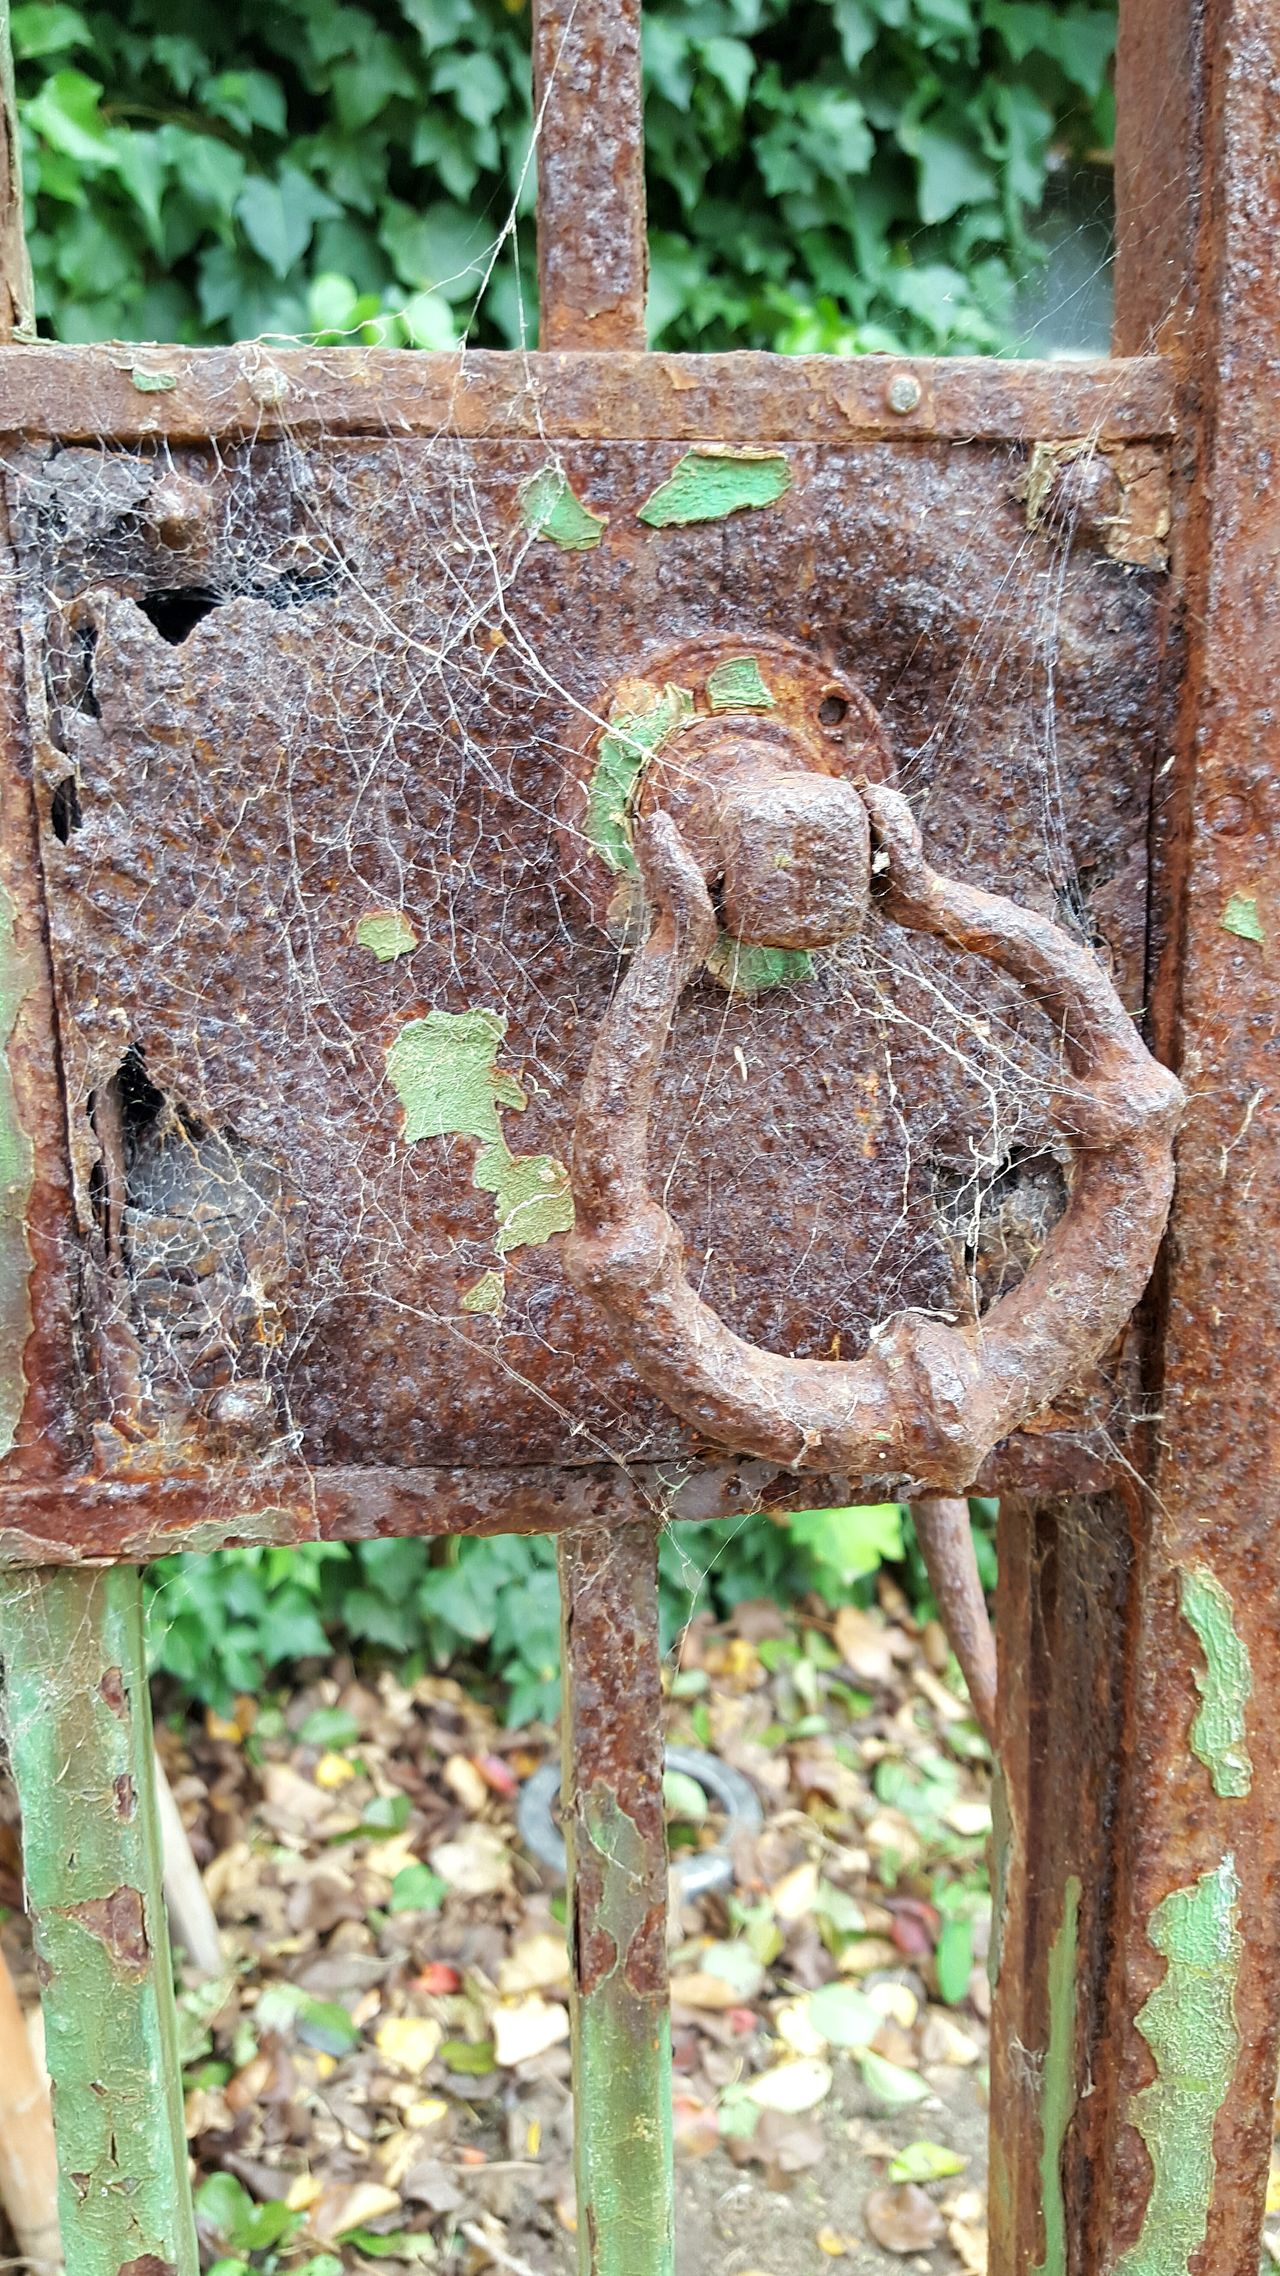 Old gate Cob Webs 0ld Gate old lock Wrought Iron Gate